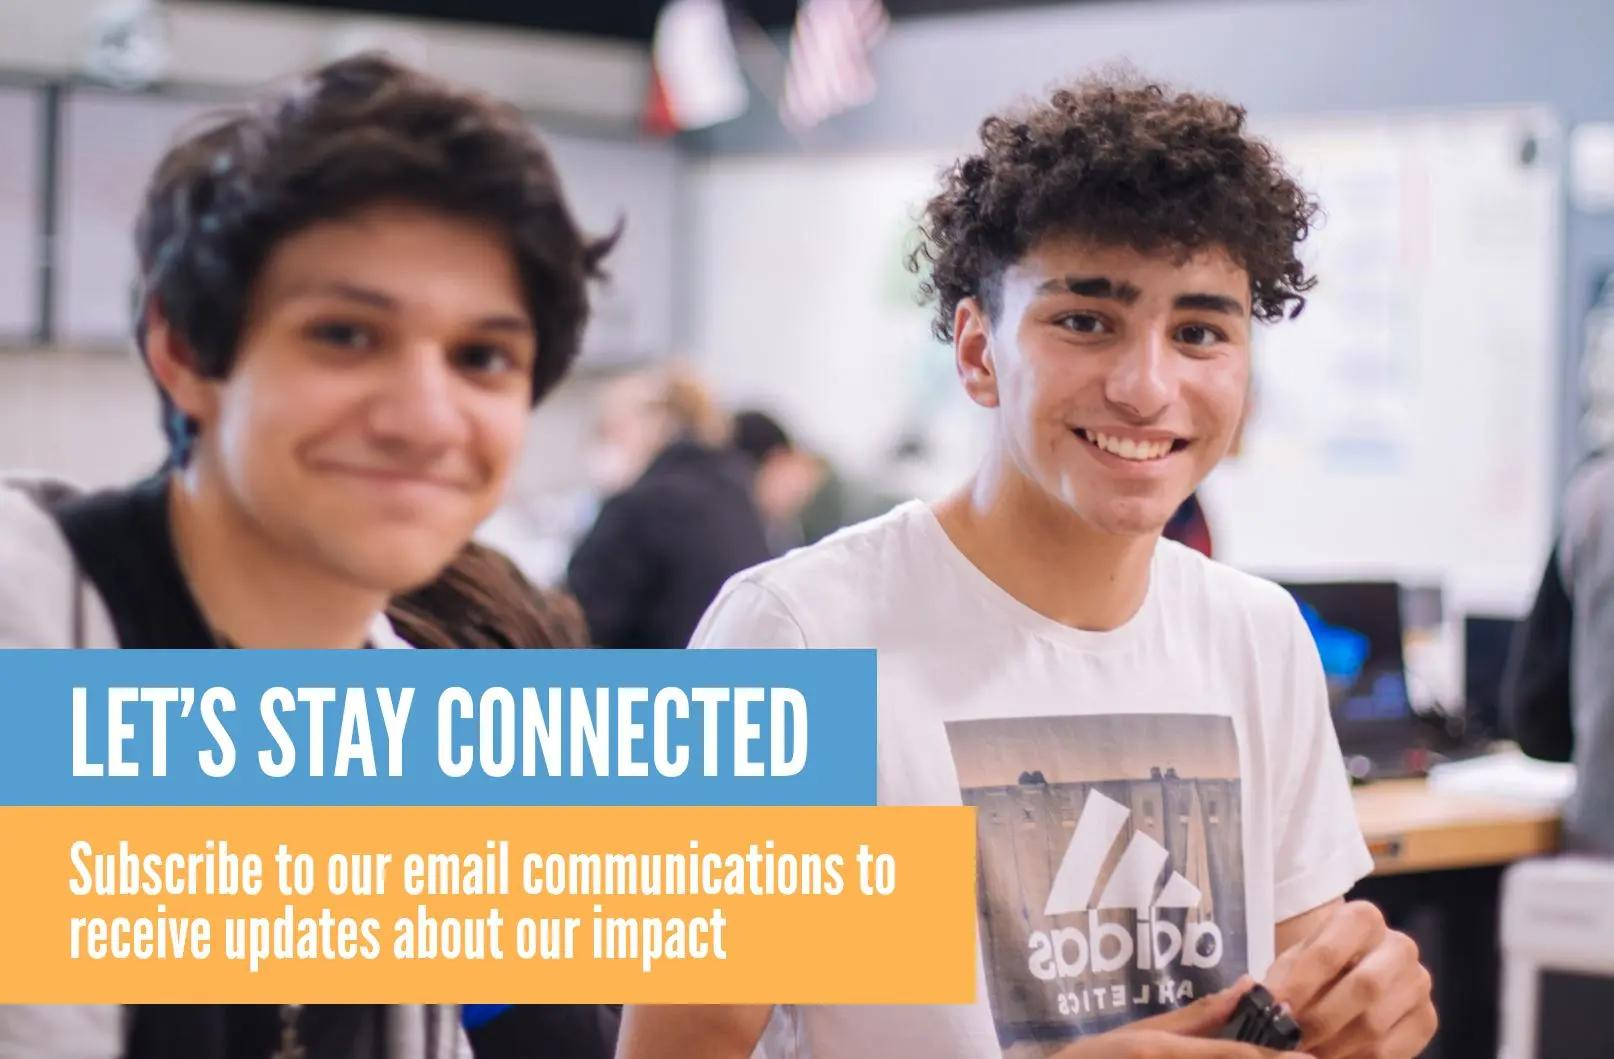 Subscribe to our email communications